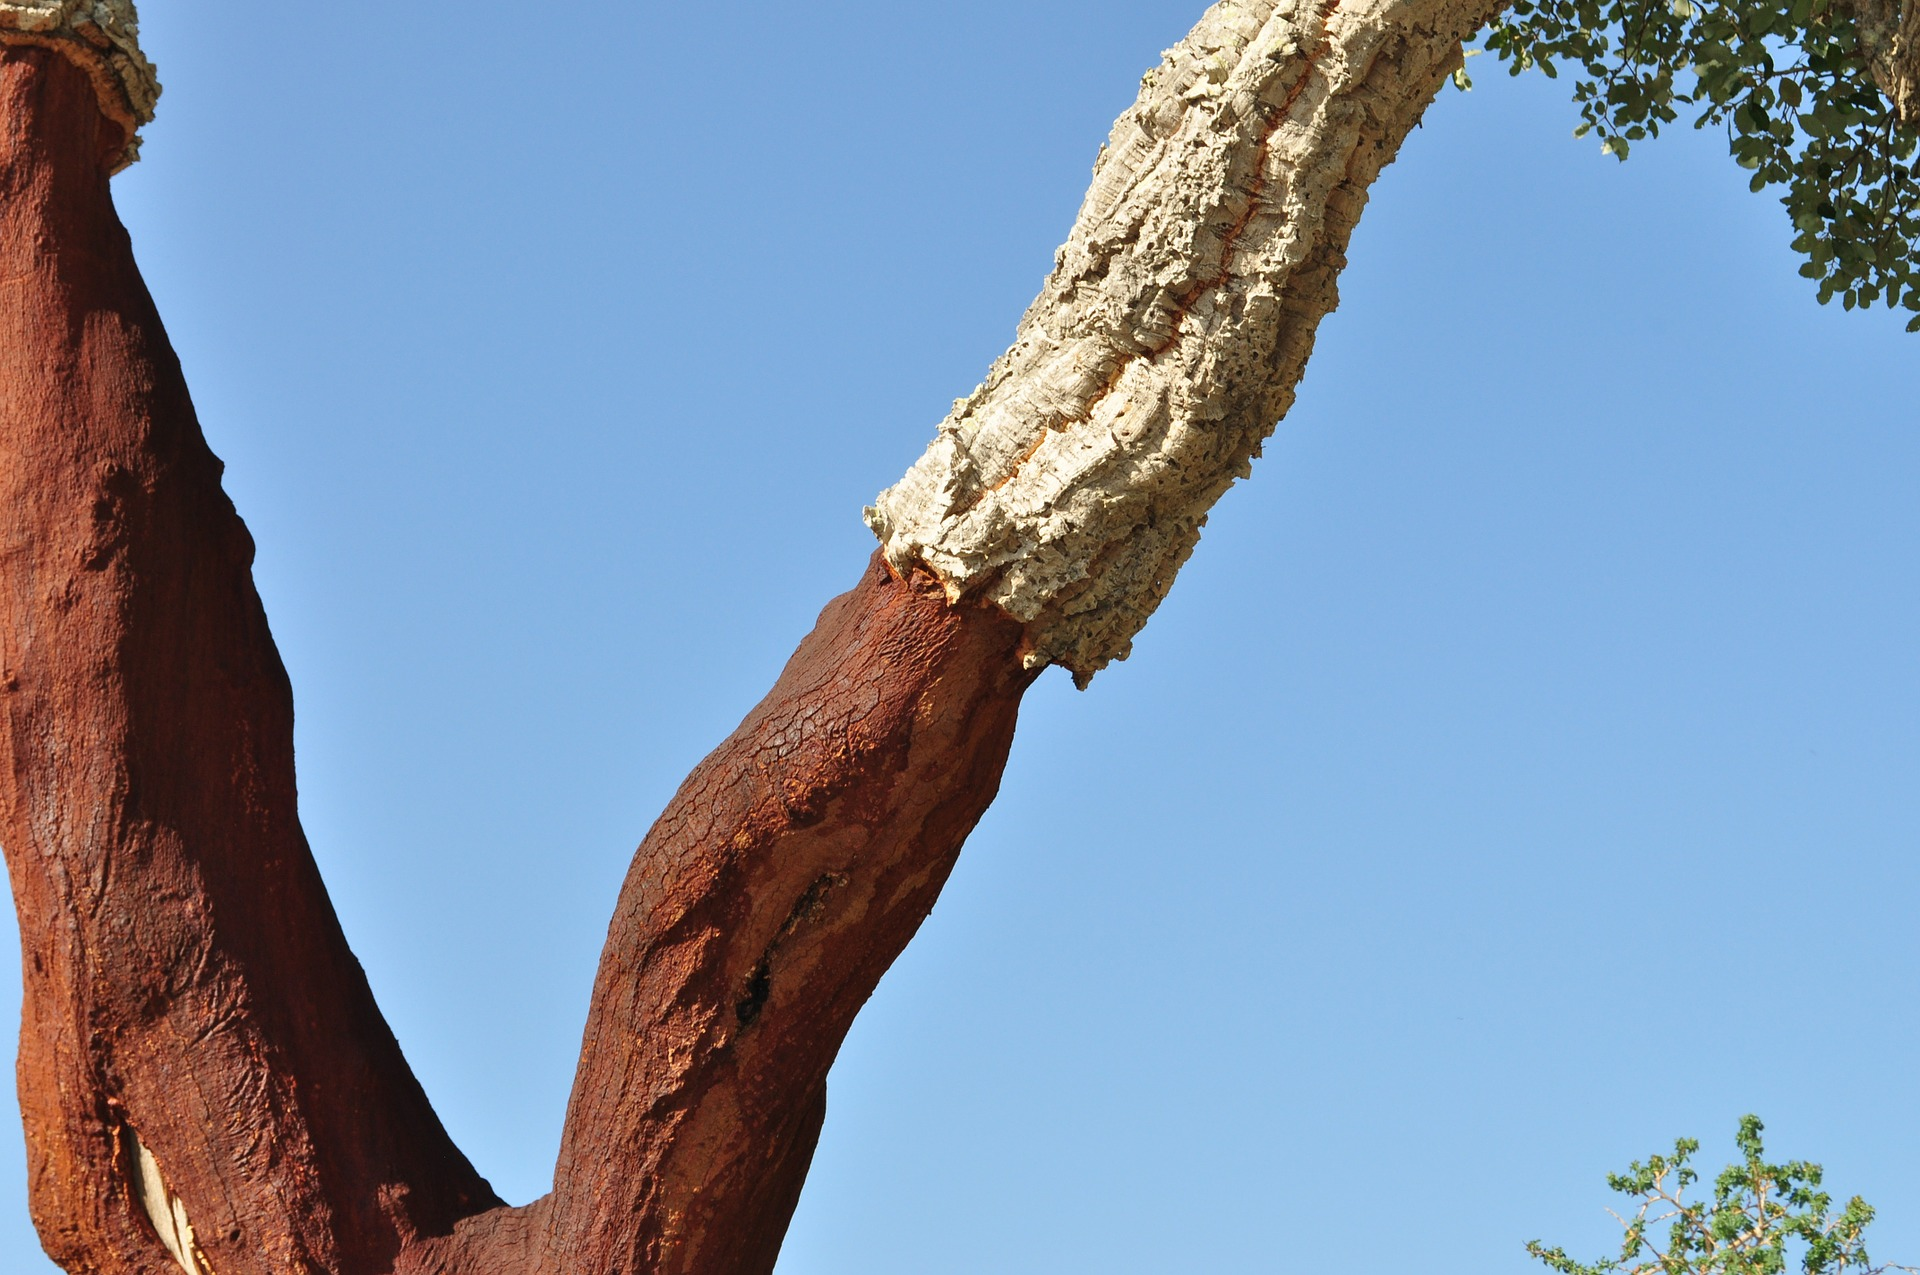 Cork oak bark.